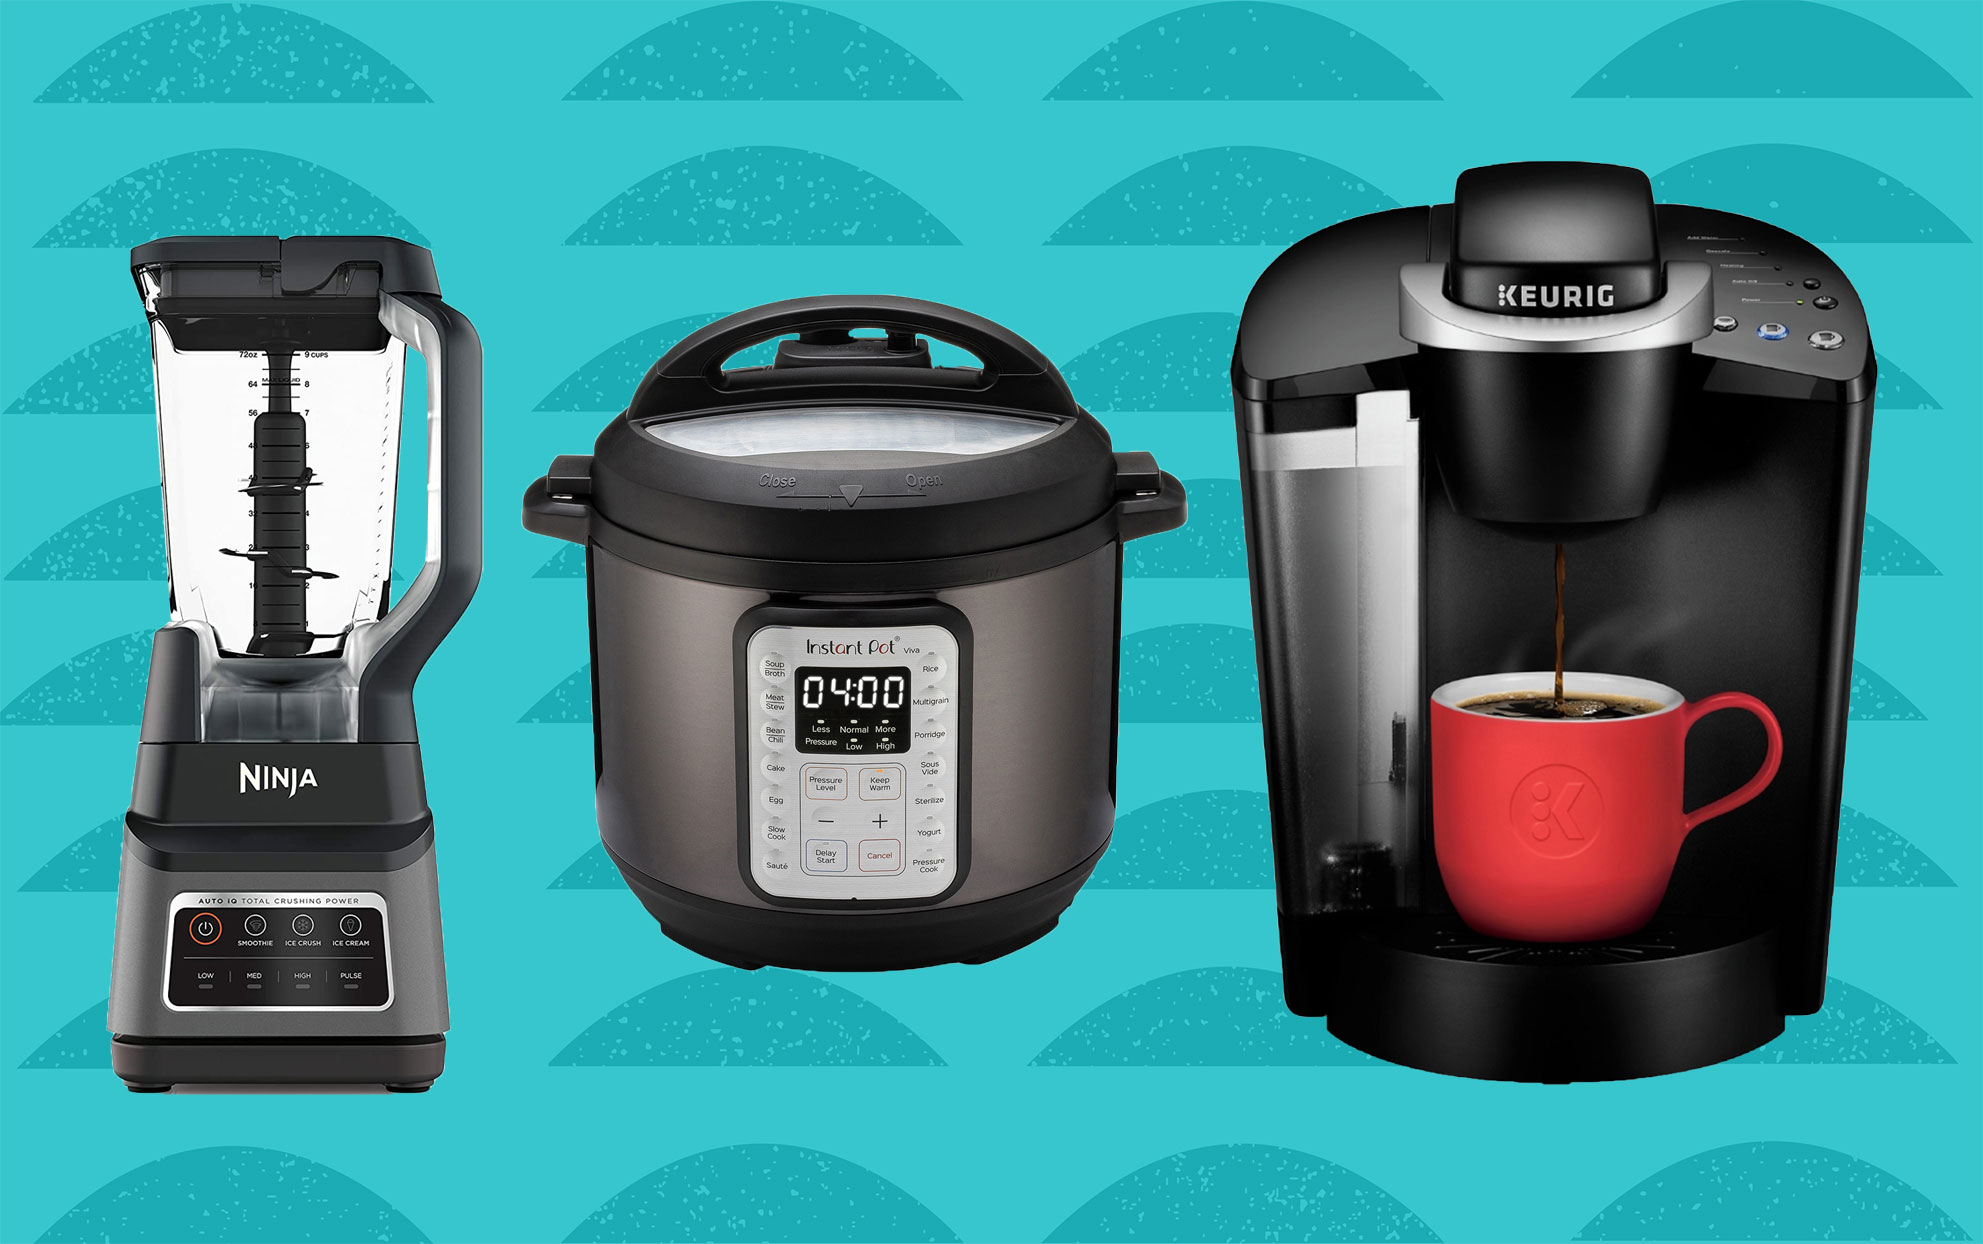 kitchen appliances on teal background